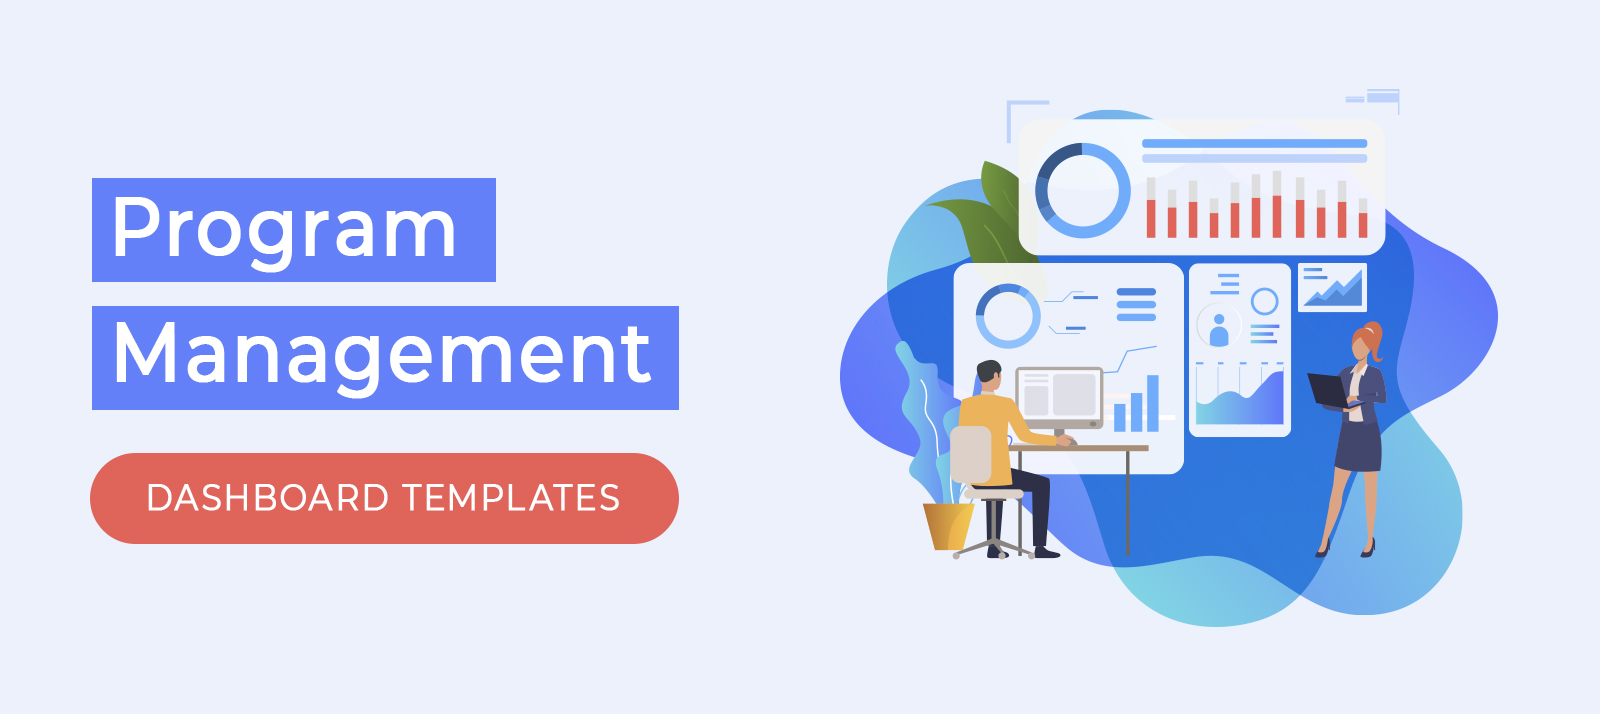 25 Modern and Powerful Program Management Dashboard Templates That Are Worth Checking Out